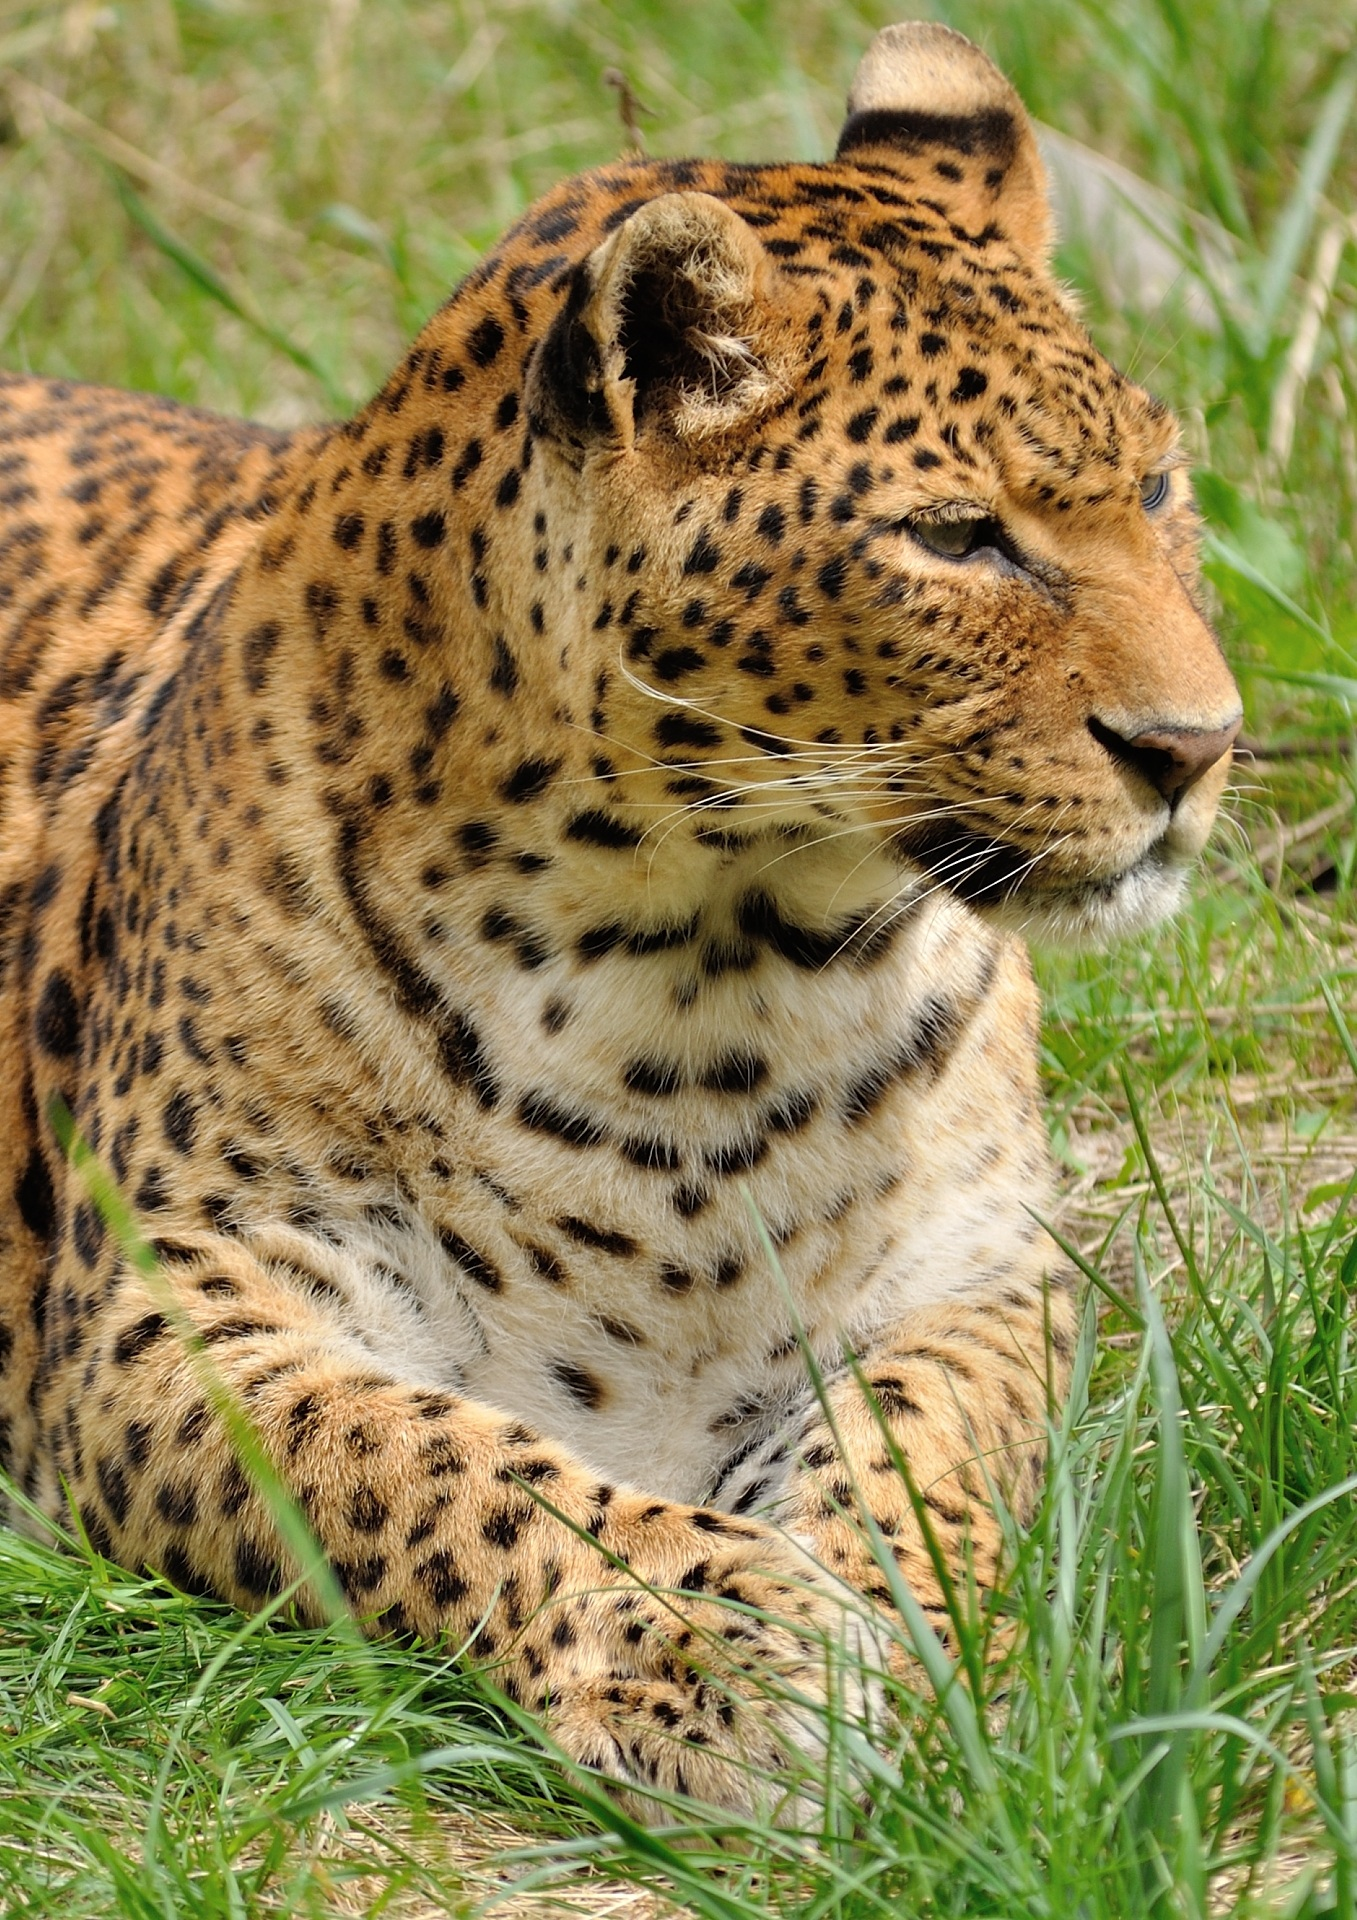 High Definition Animal Wallpapers Cheetah In Green Grass Lawn 183 Free Stock Photo